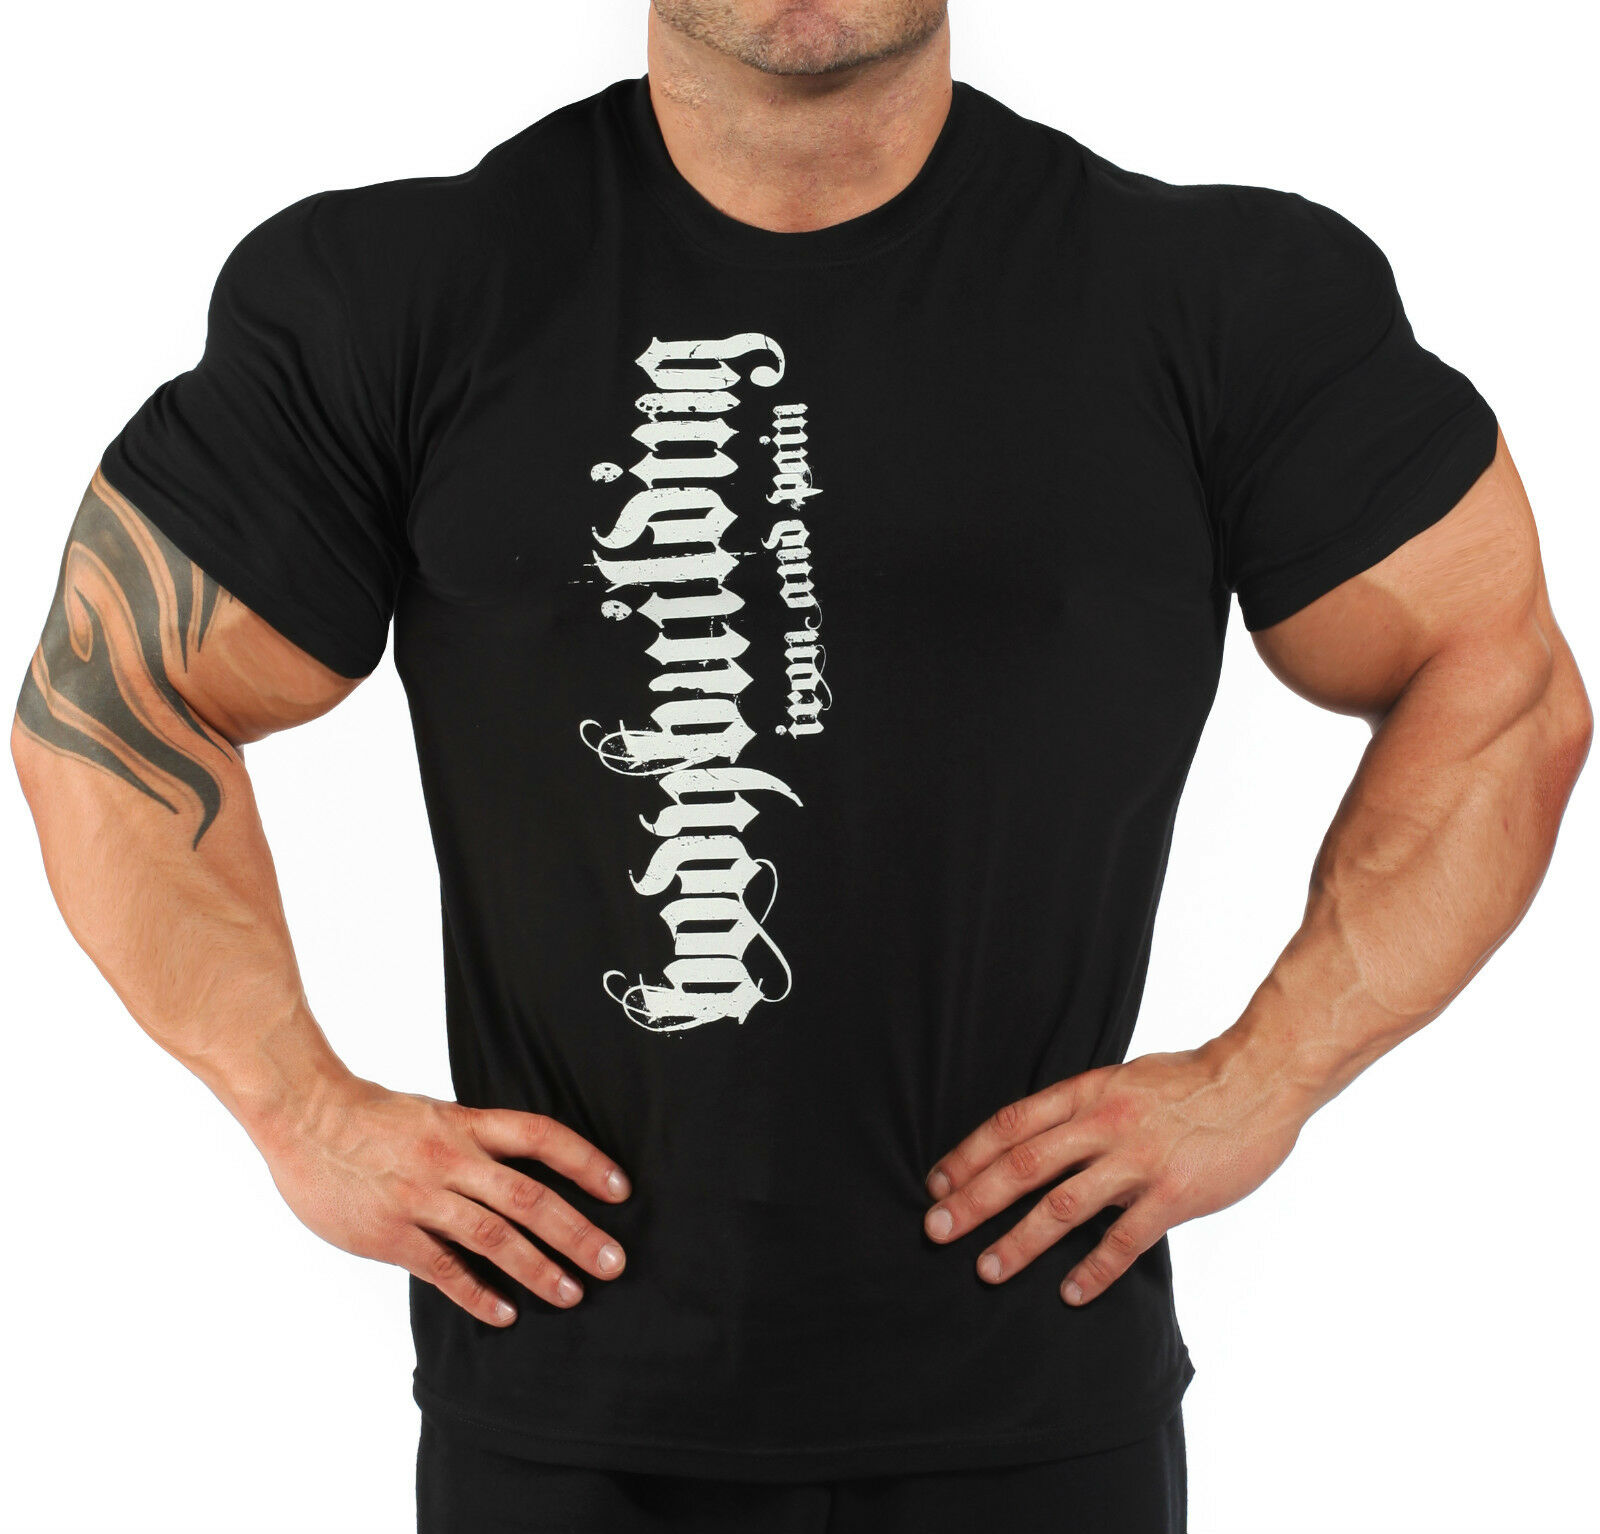 bodybuilding t shirt workout clothing black j 103 ebay